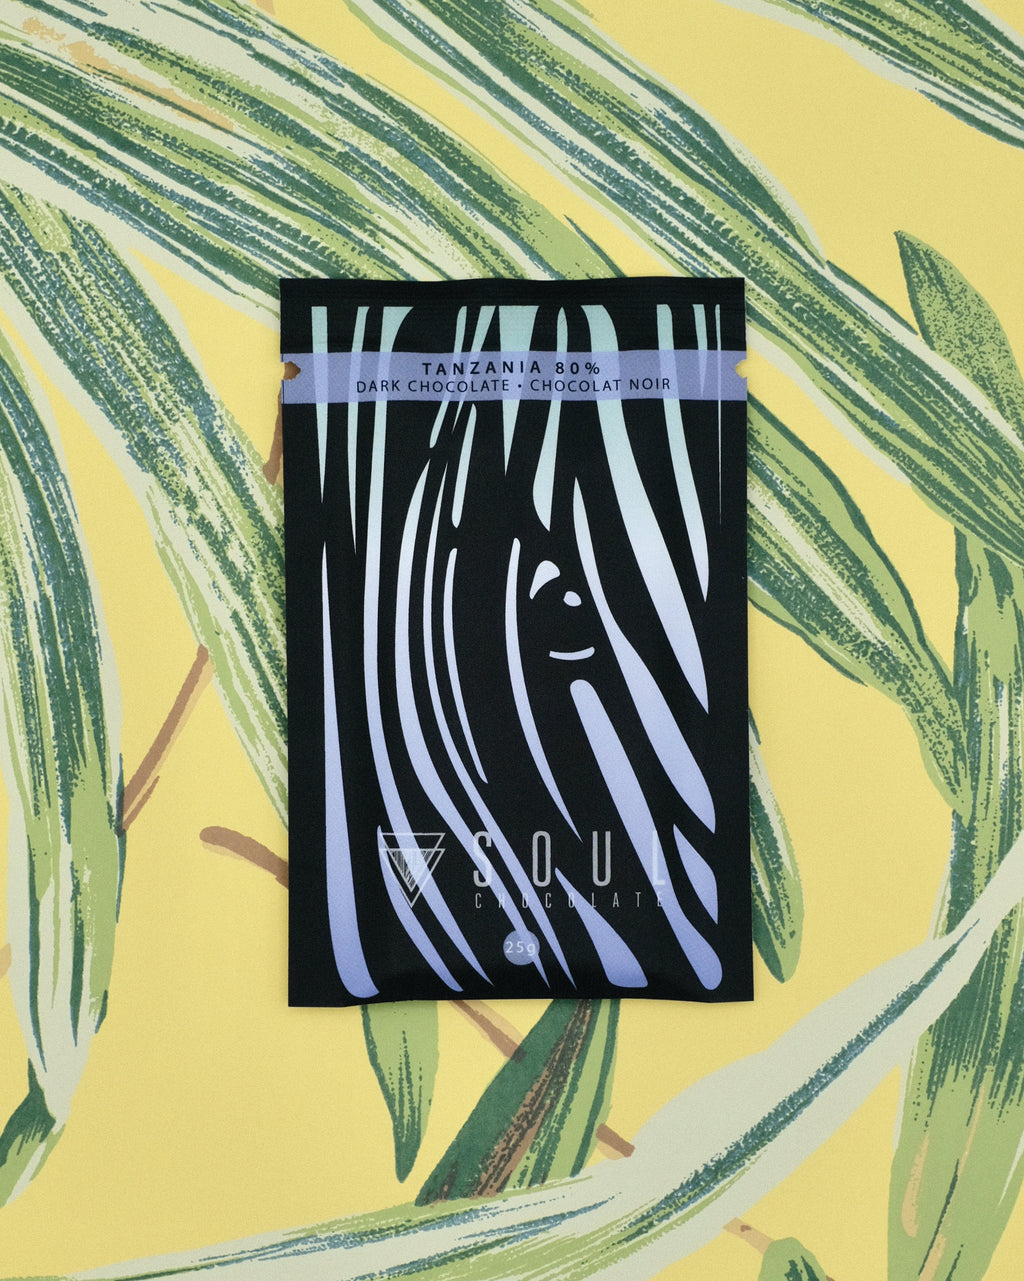 The front of our Tanzania 80% dark chocolate bar. Its designed to look like a Zebra - one of which we encountered on our trip to Tanzania.